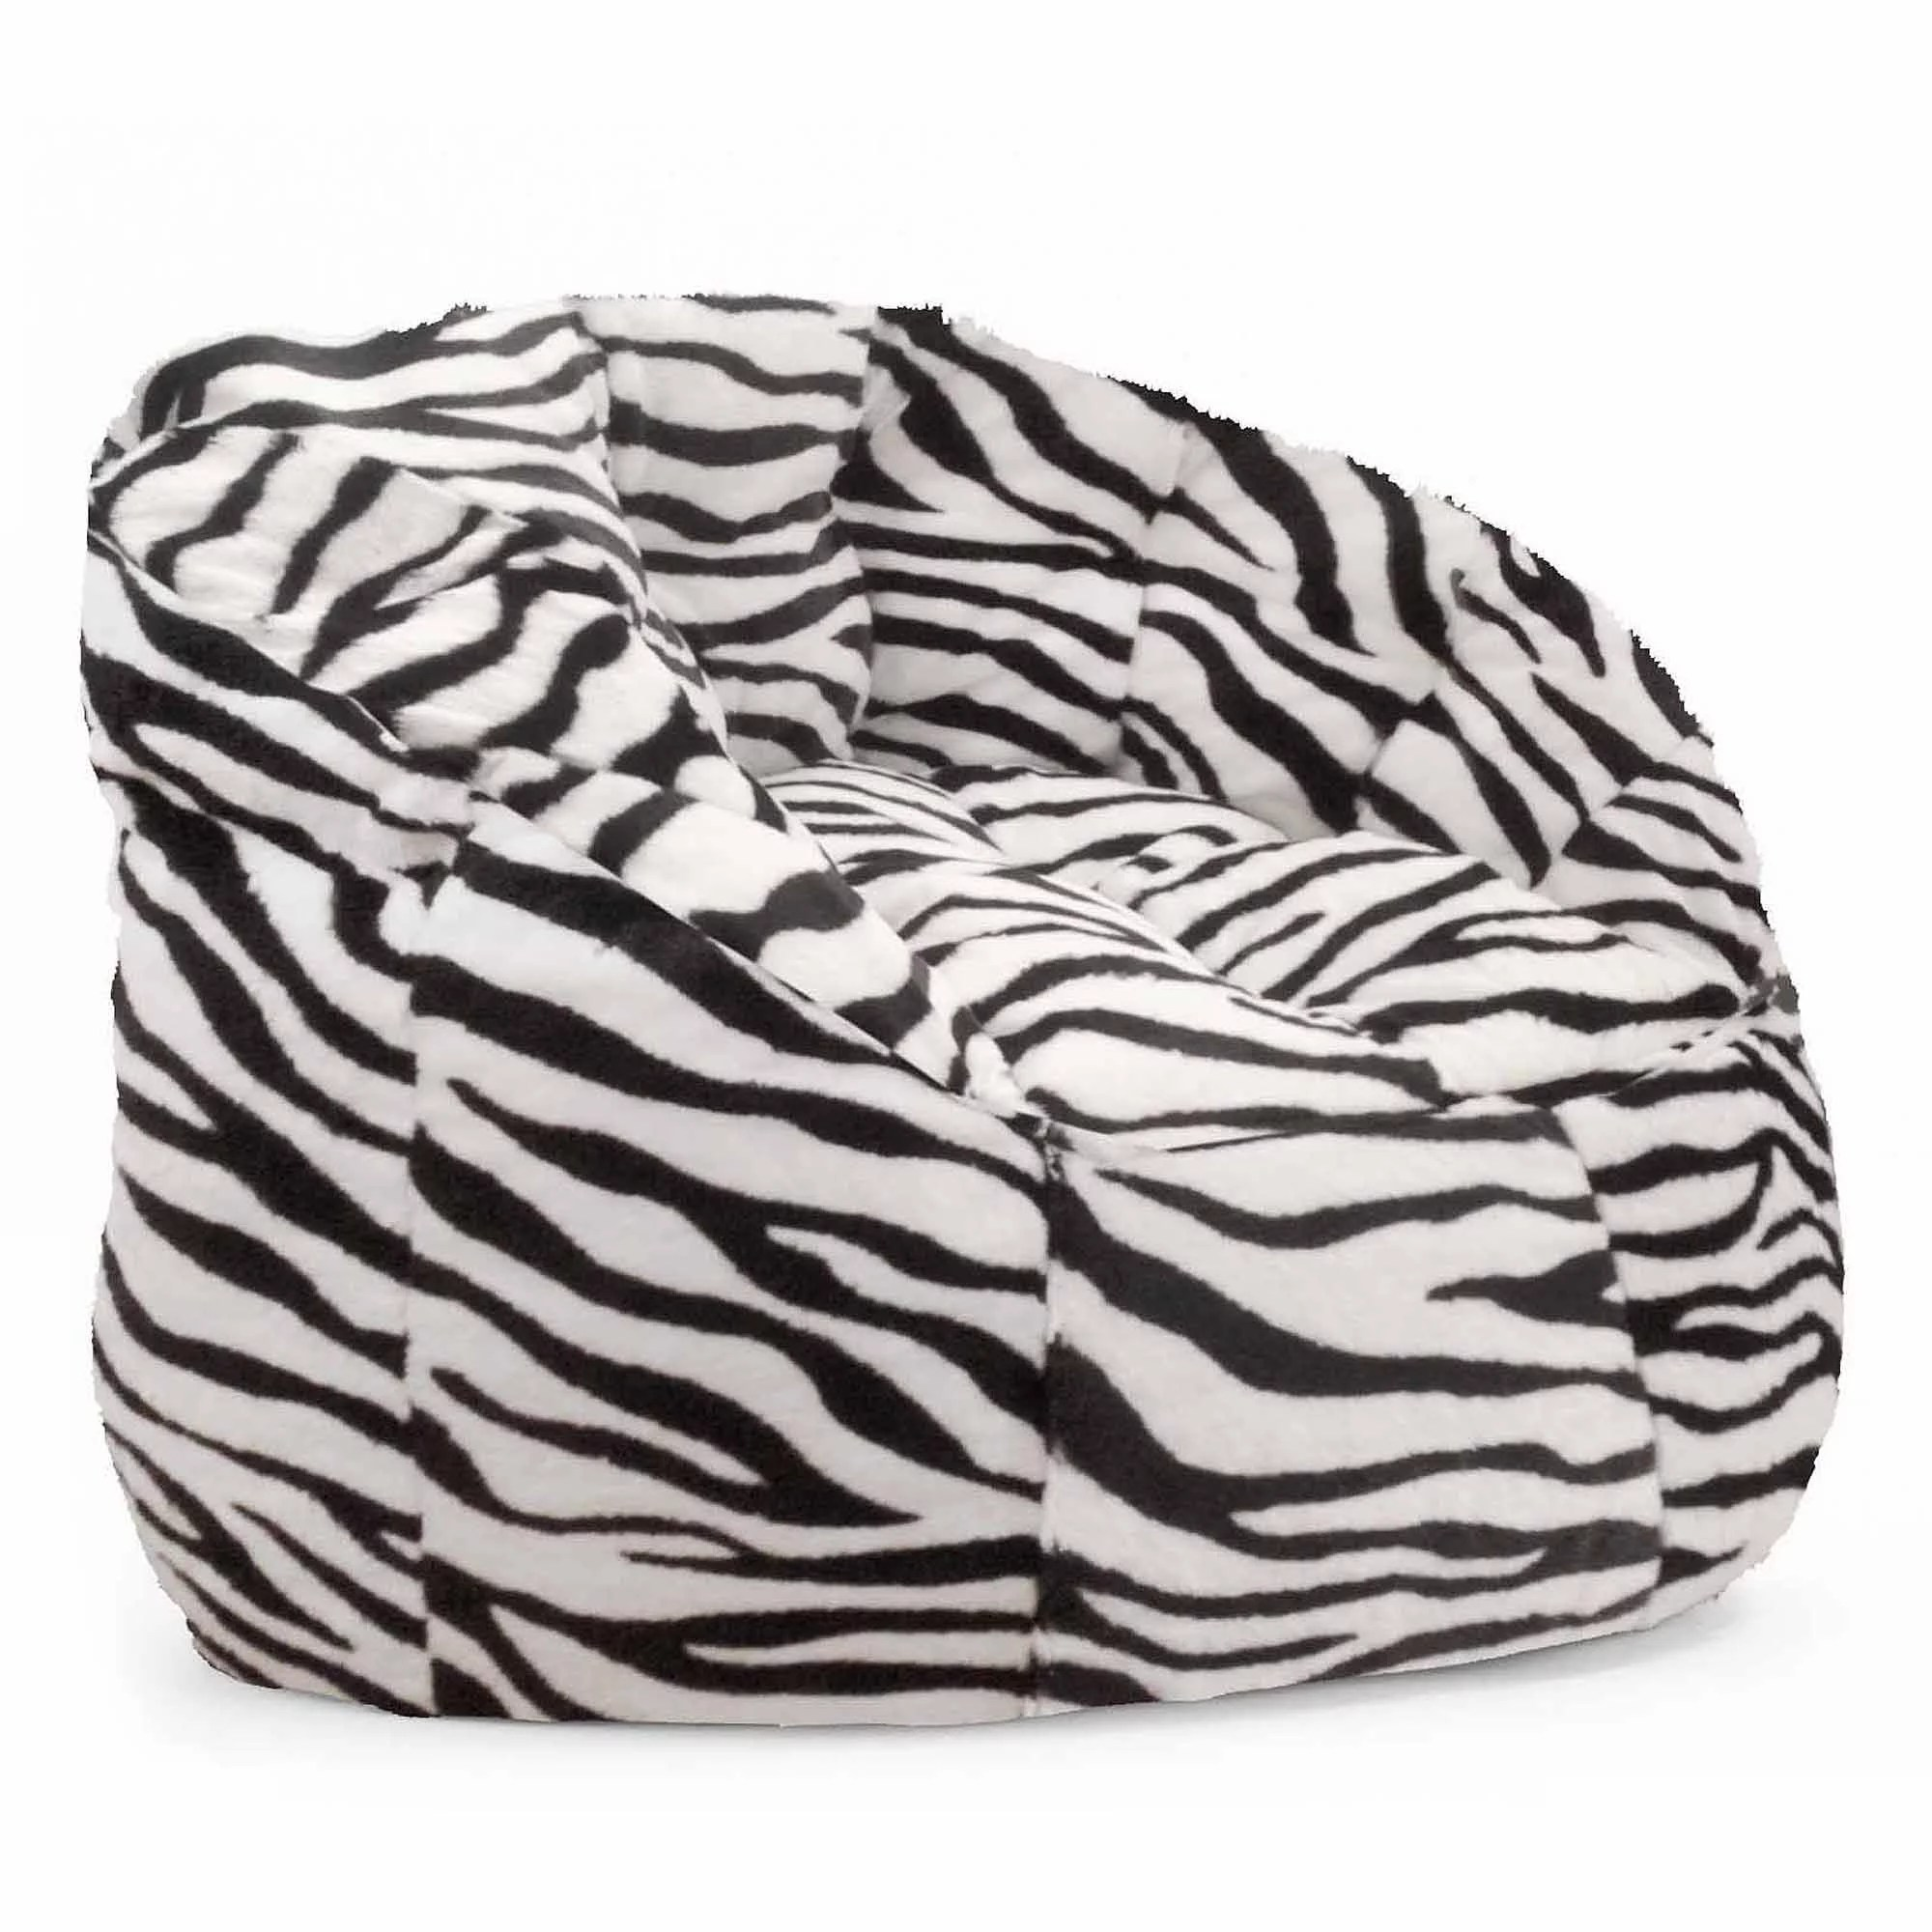 Beanbag Chairs Cocoon Faux Fur Bean Bag Chair Multiple Colors